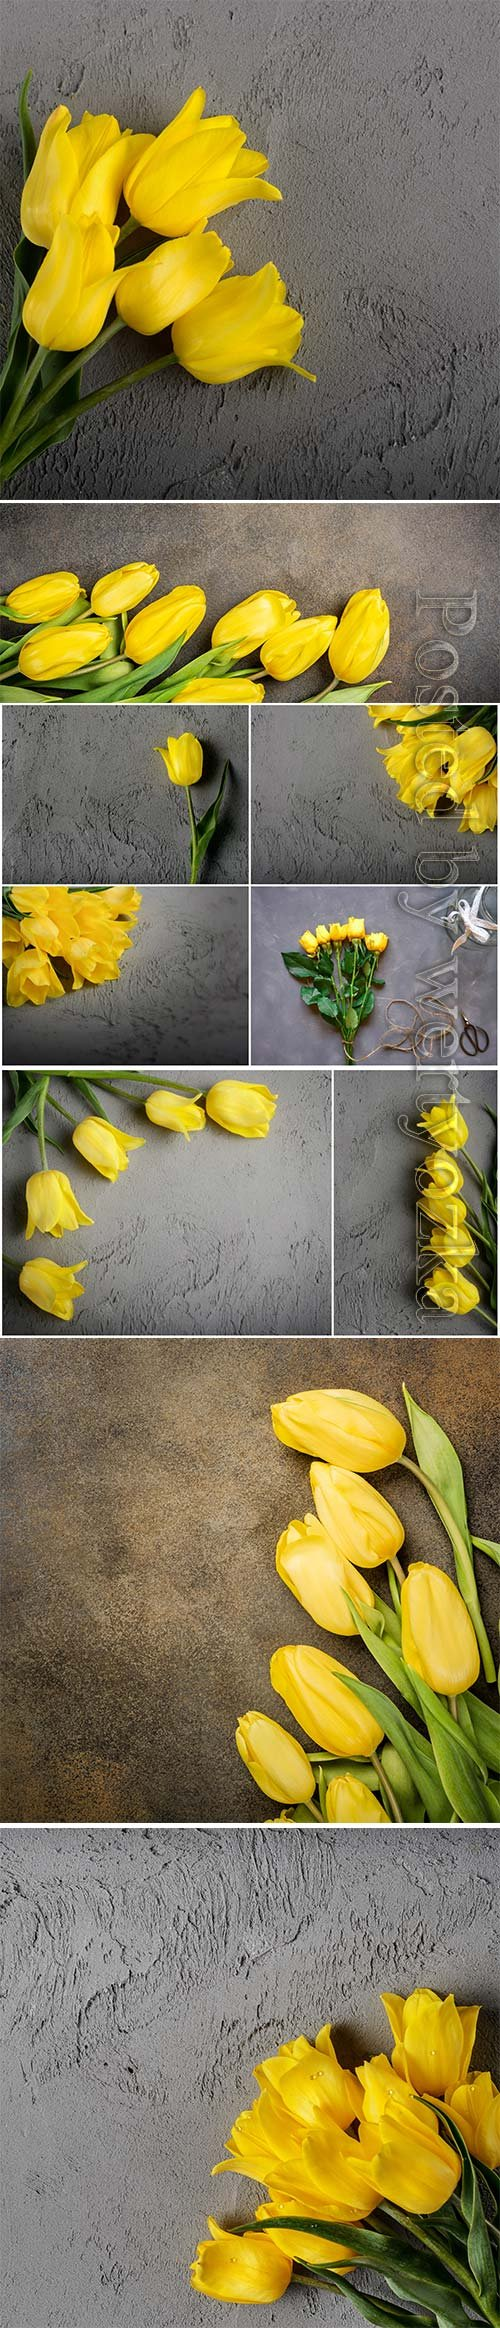 Beautiful yellow tulips stock photo